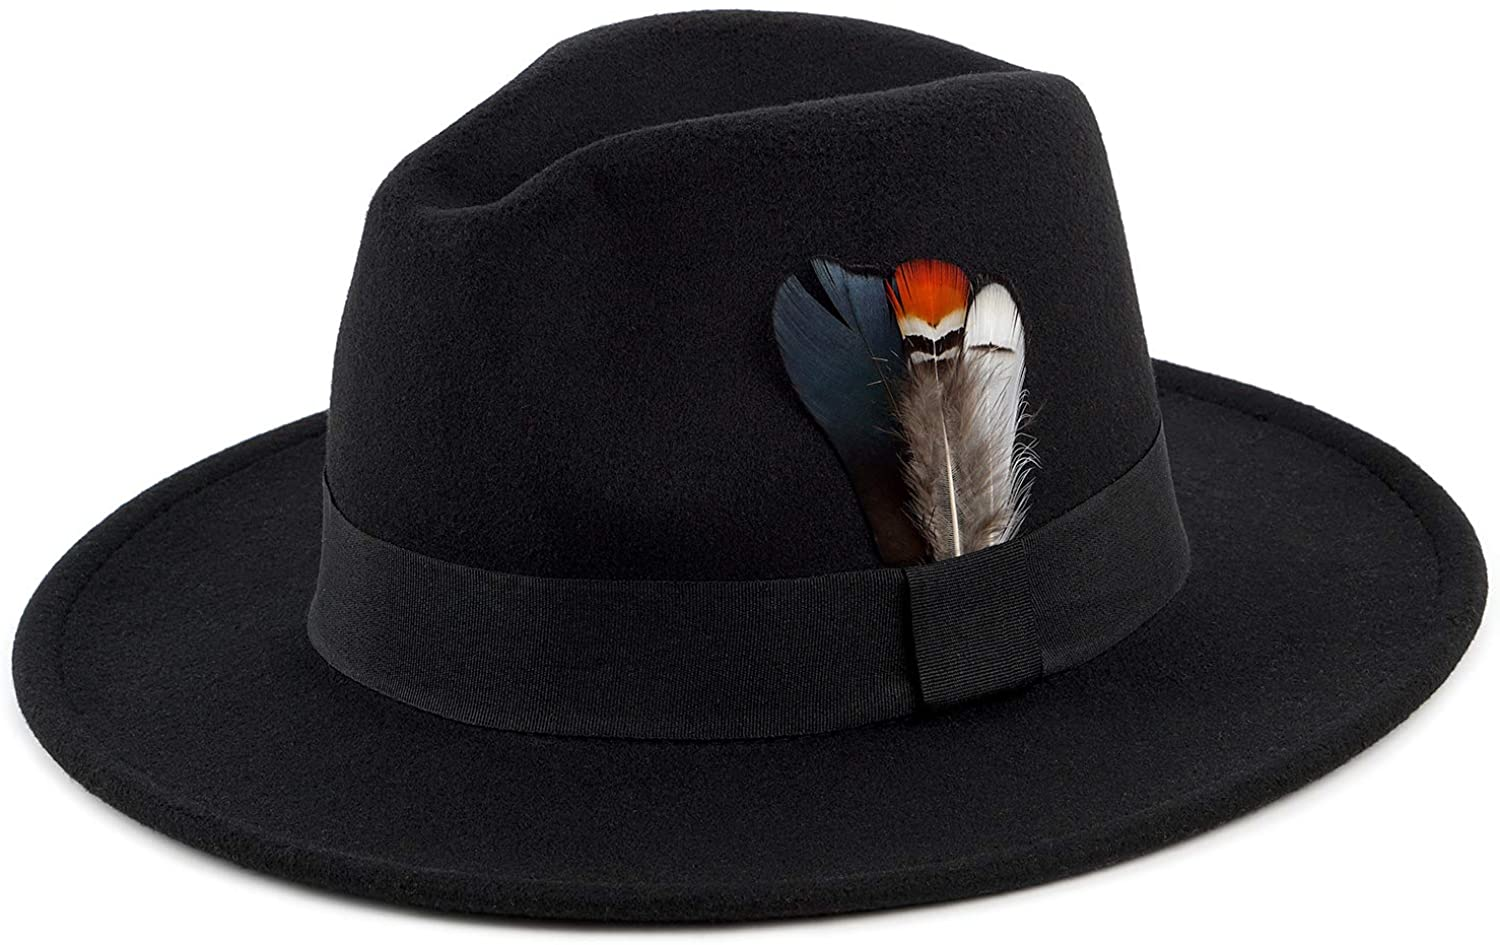 Classic Fedora Hat for Men & Women Wide Brim Panama Hat Vintage Gangster Hat with Black Band and Feather